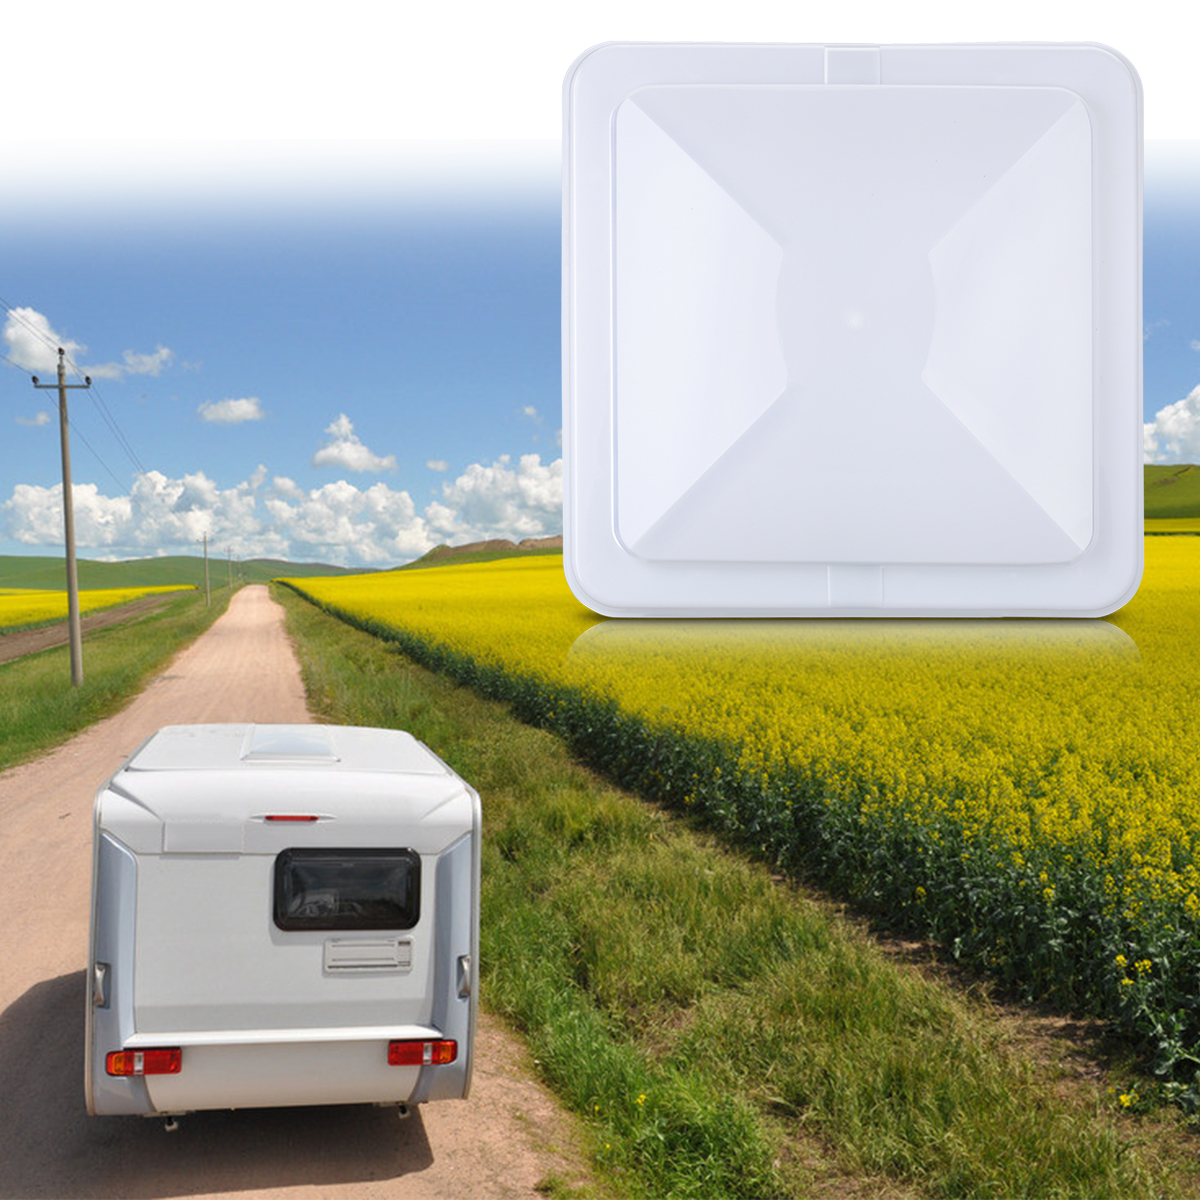 VETOMILE RV Roof Vent Lid Cover Universal Replacement 14 Inch White for Camper Trailer 2 Packs